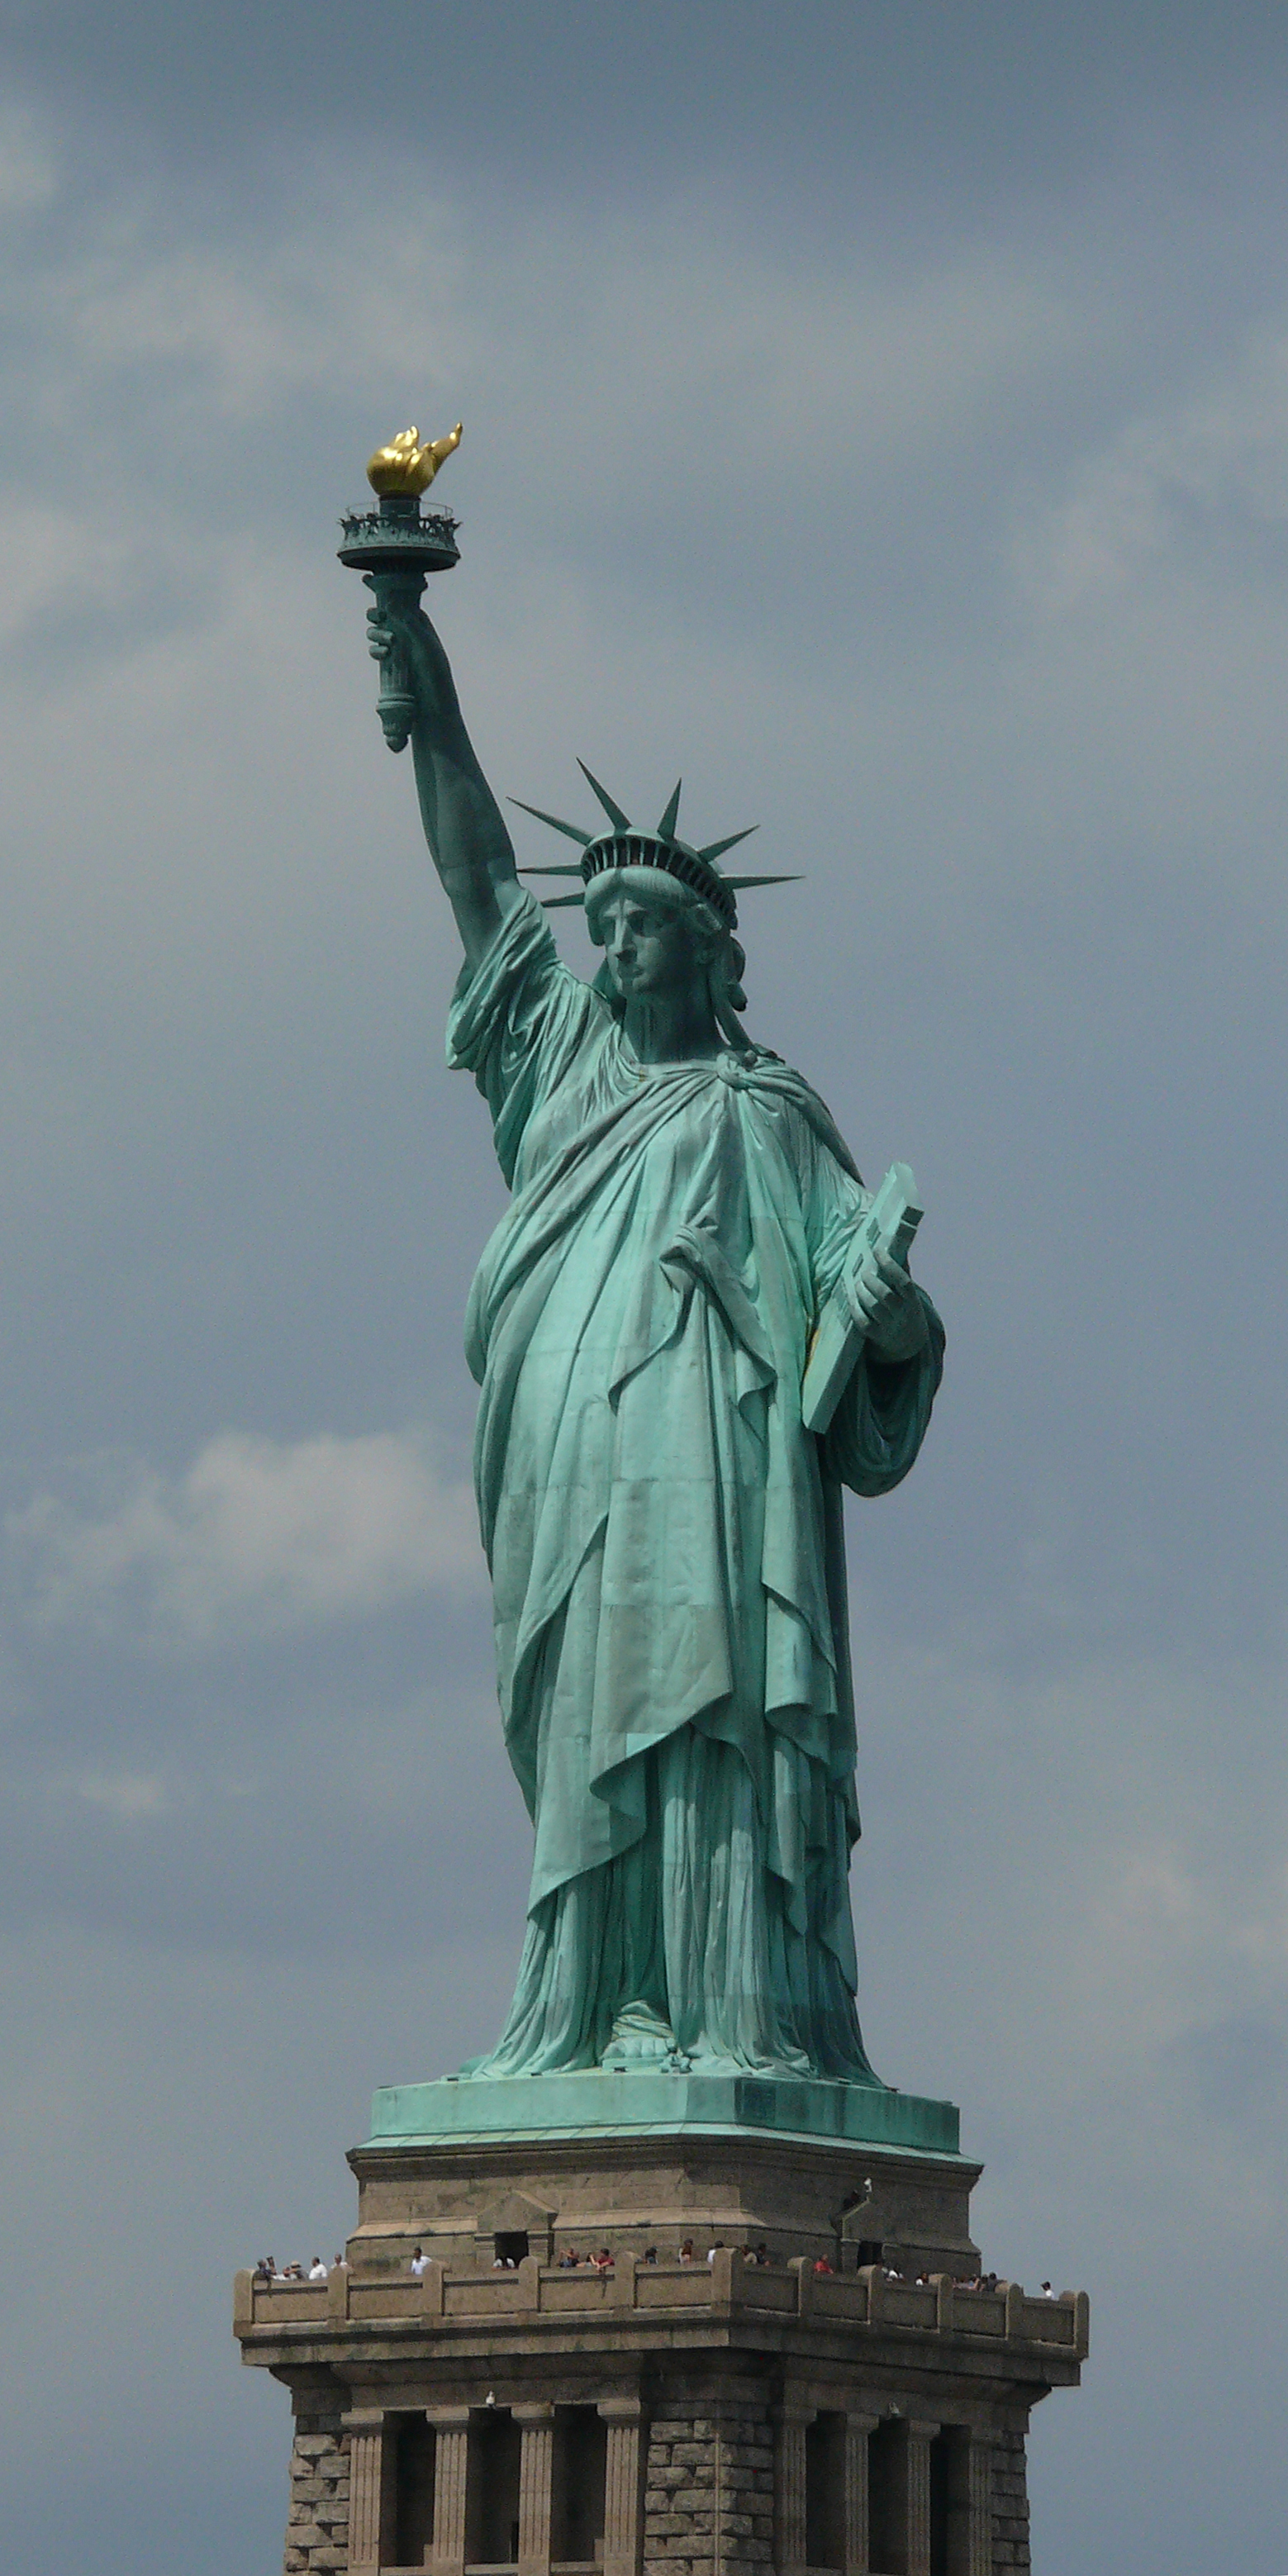 File:Statue of Liberty 25.jpg - Wikimedia Commons